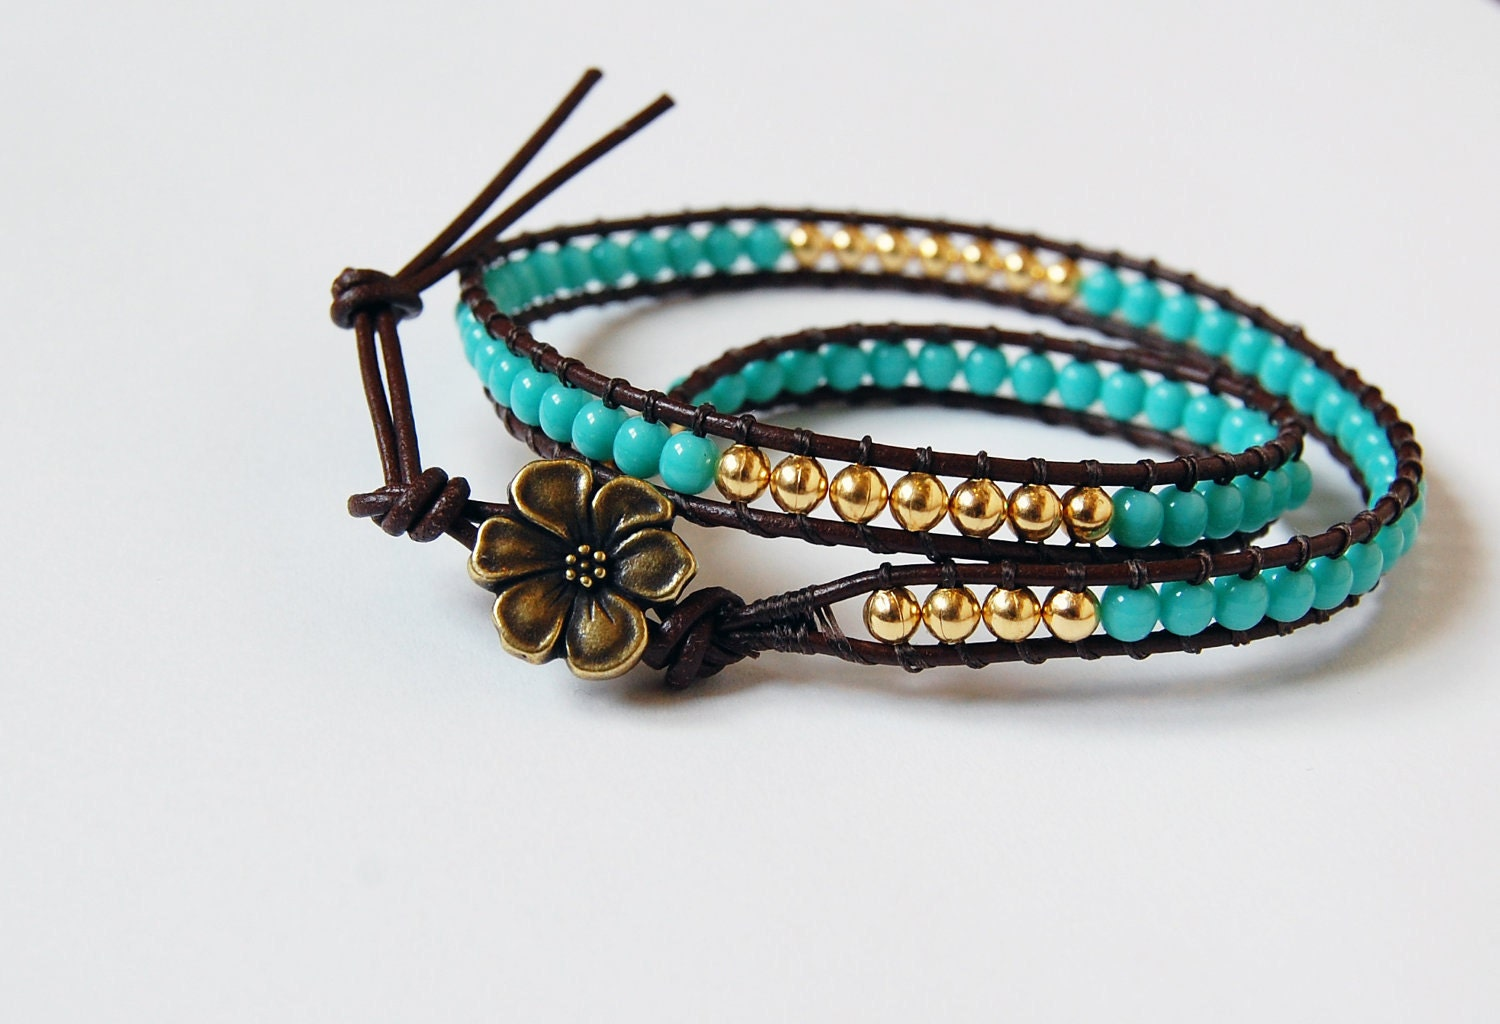 Beaded Leather Bracelet - Vivid Blue and Brass Beads on Brown Leather - beadsandbrass